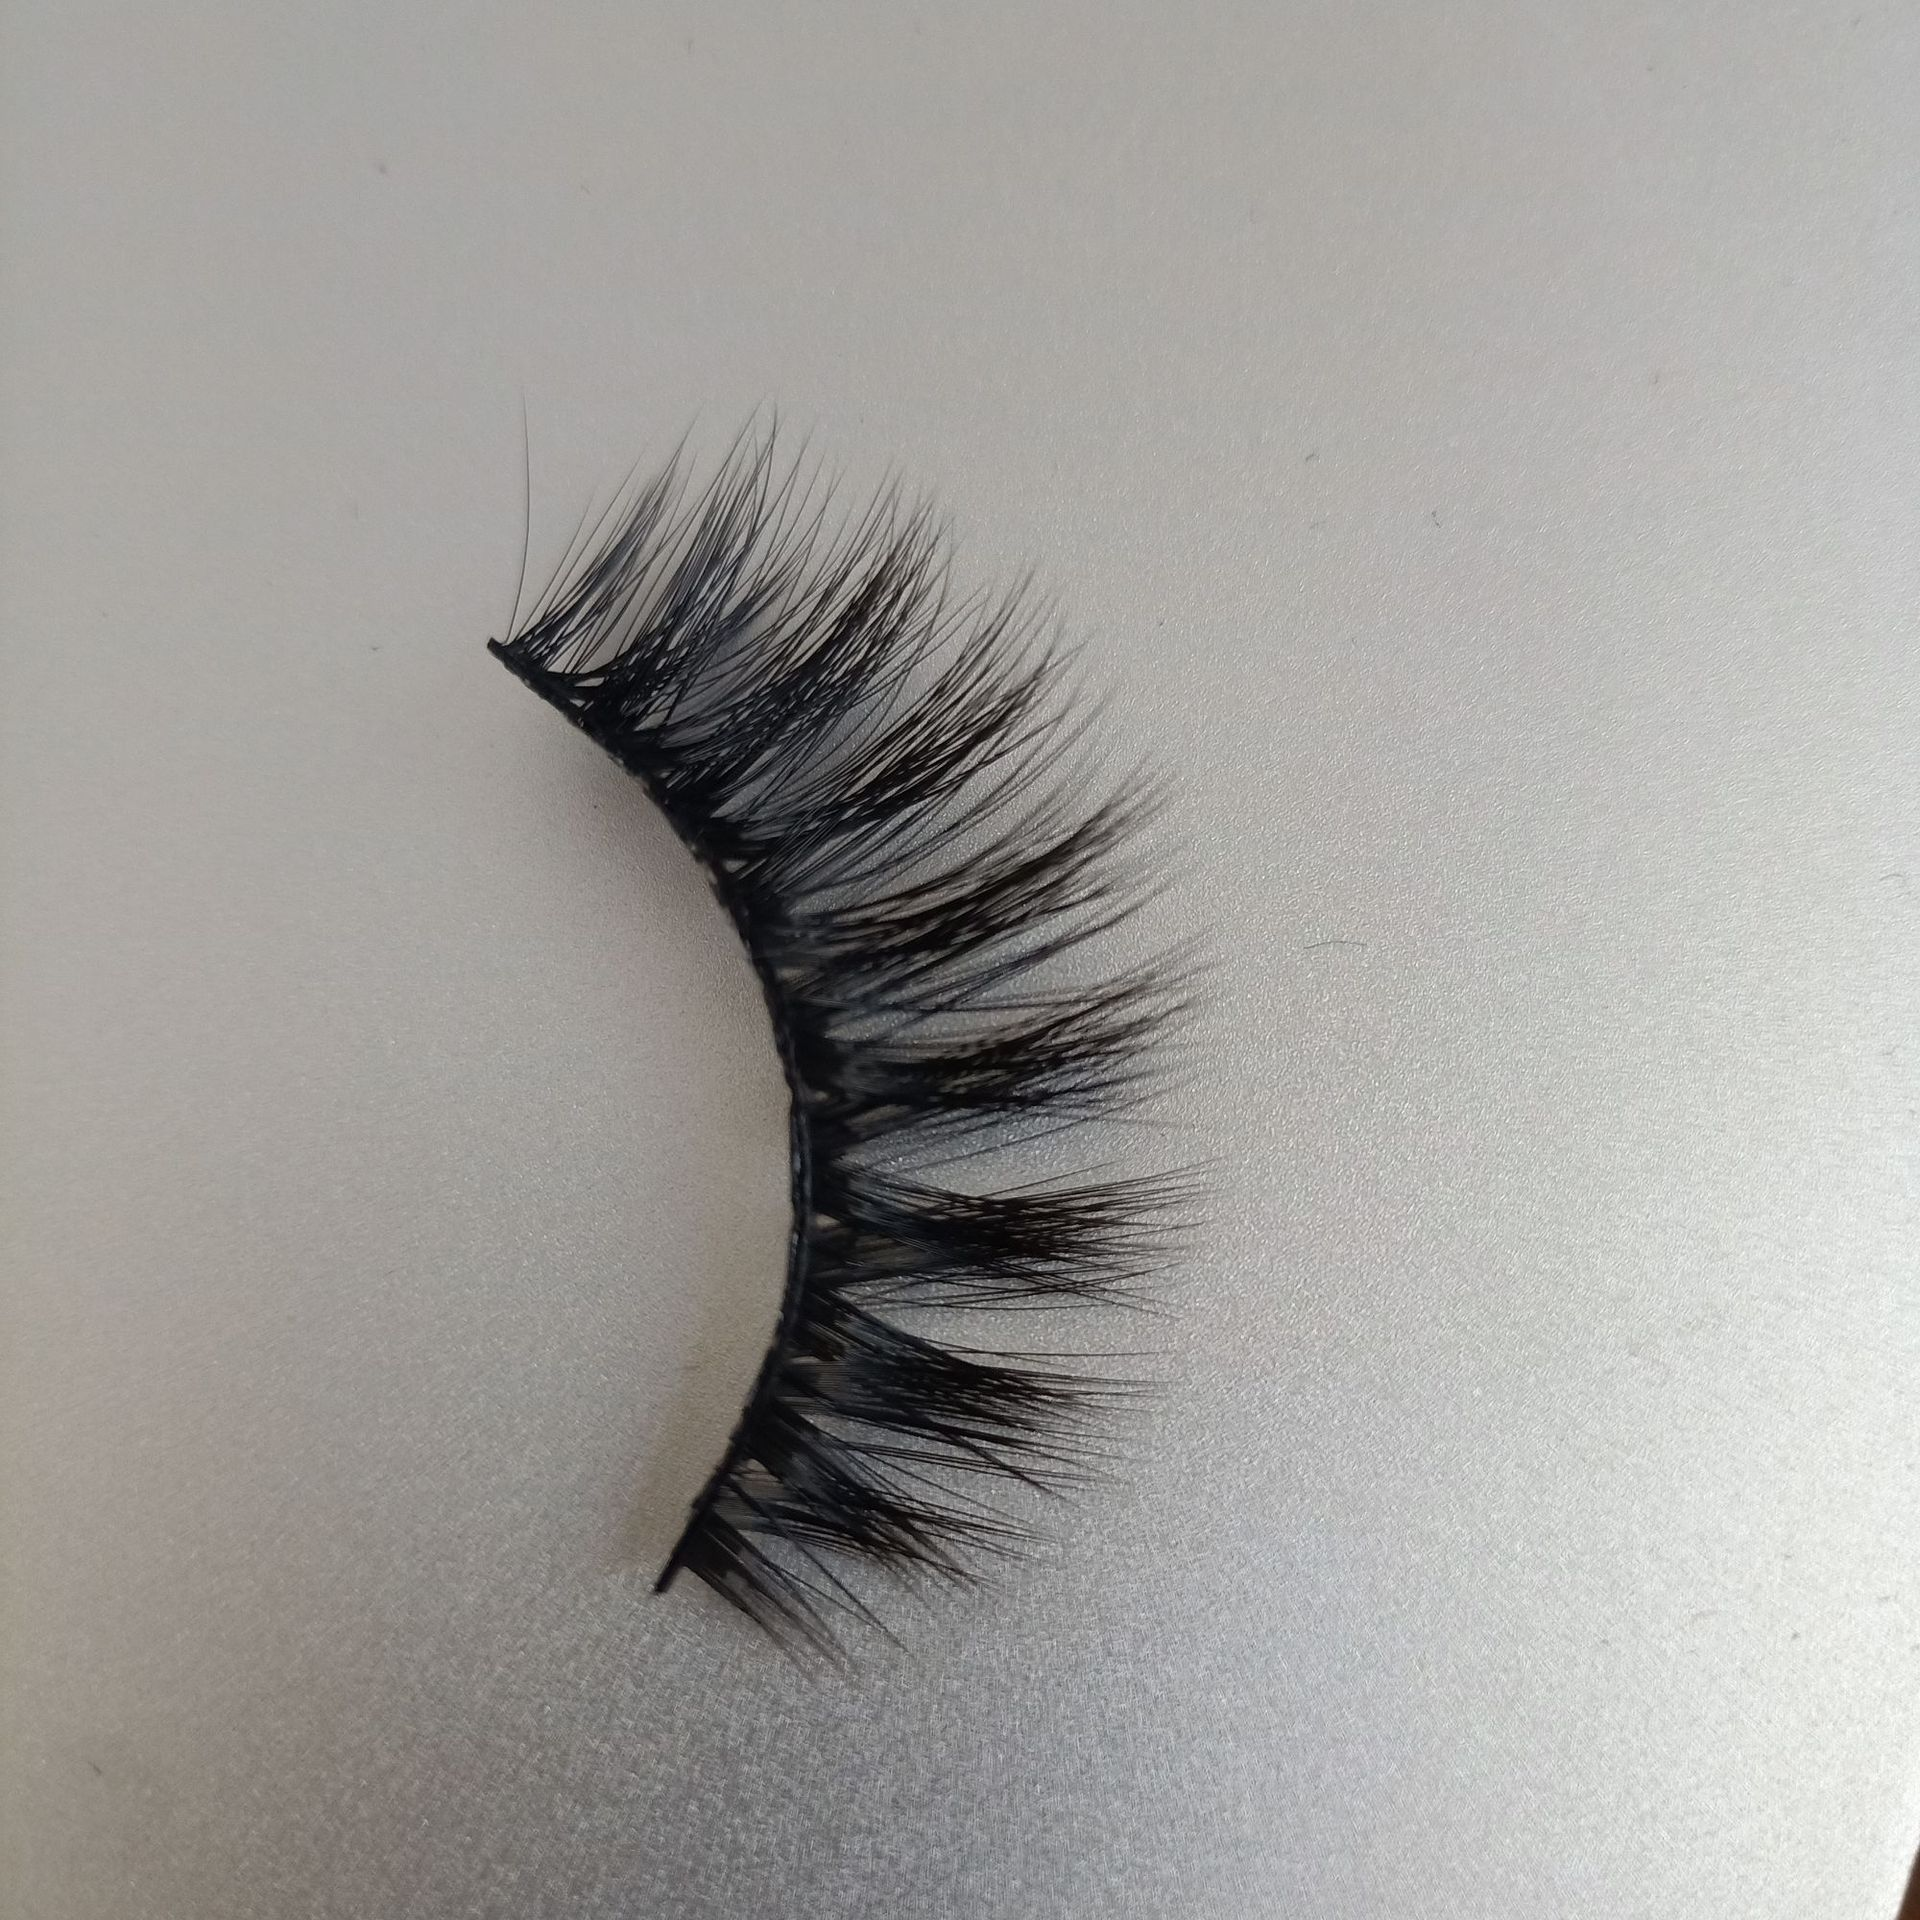 KESMALL 3 Pairs Per Box Mink Fur 3D 15 Eyelashes Natural Thick A False Eyelashes Self Adhesive False Eyelashes CL0073